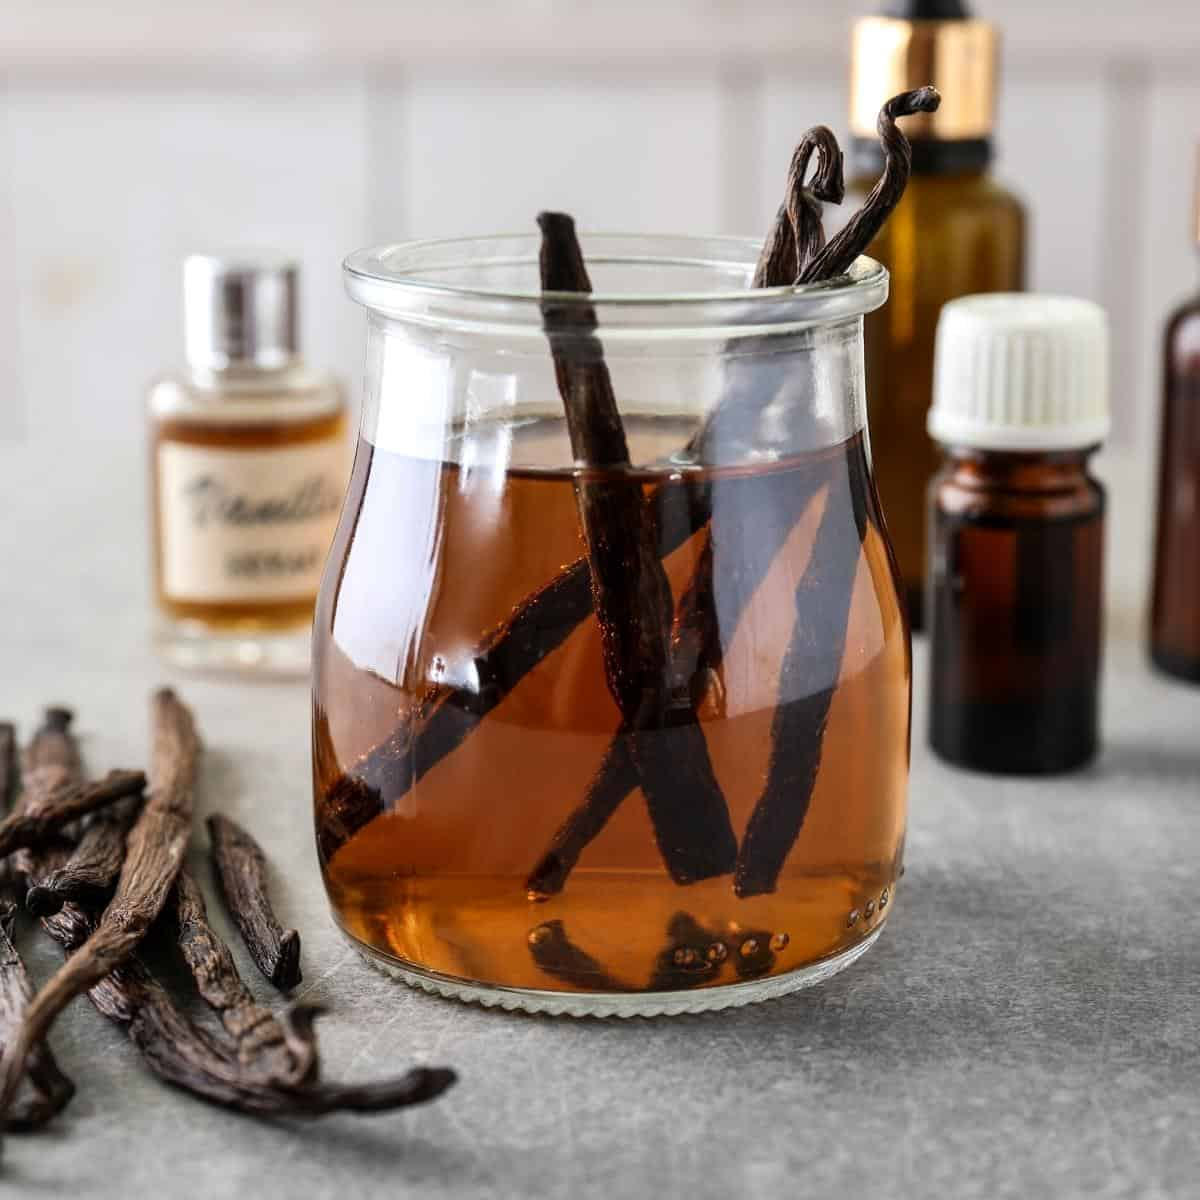 A jar with seeping vanilla extract